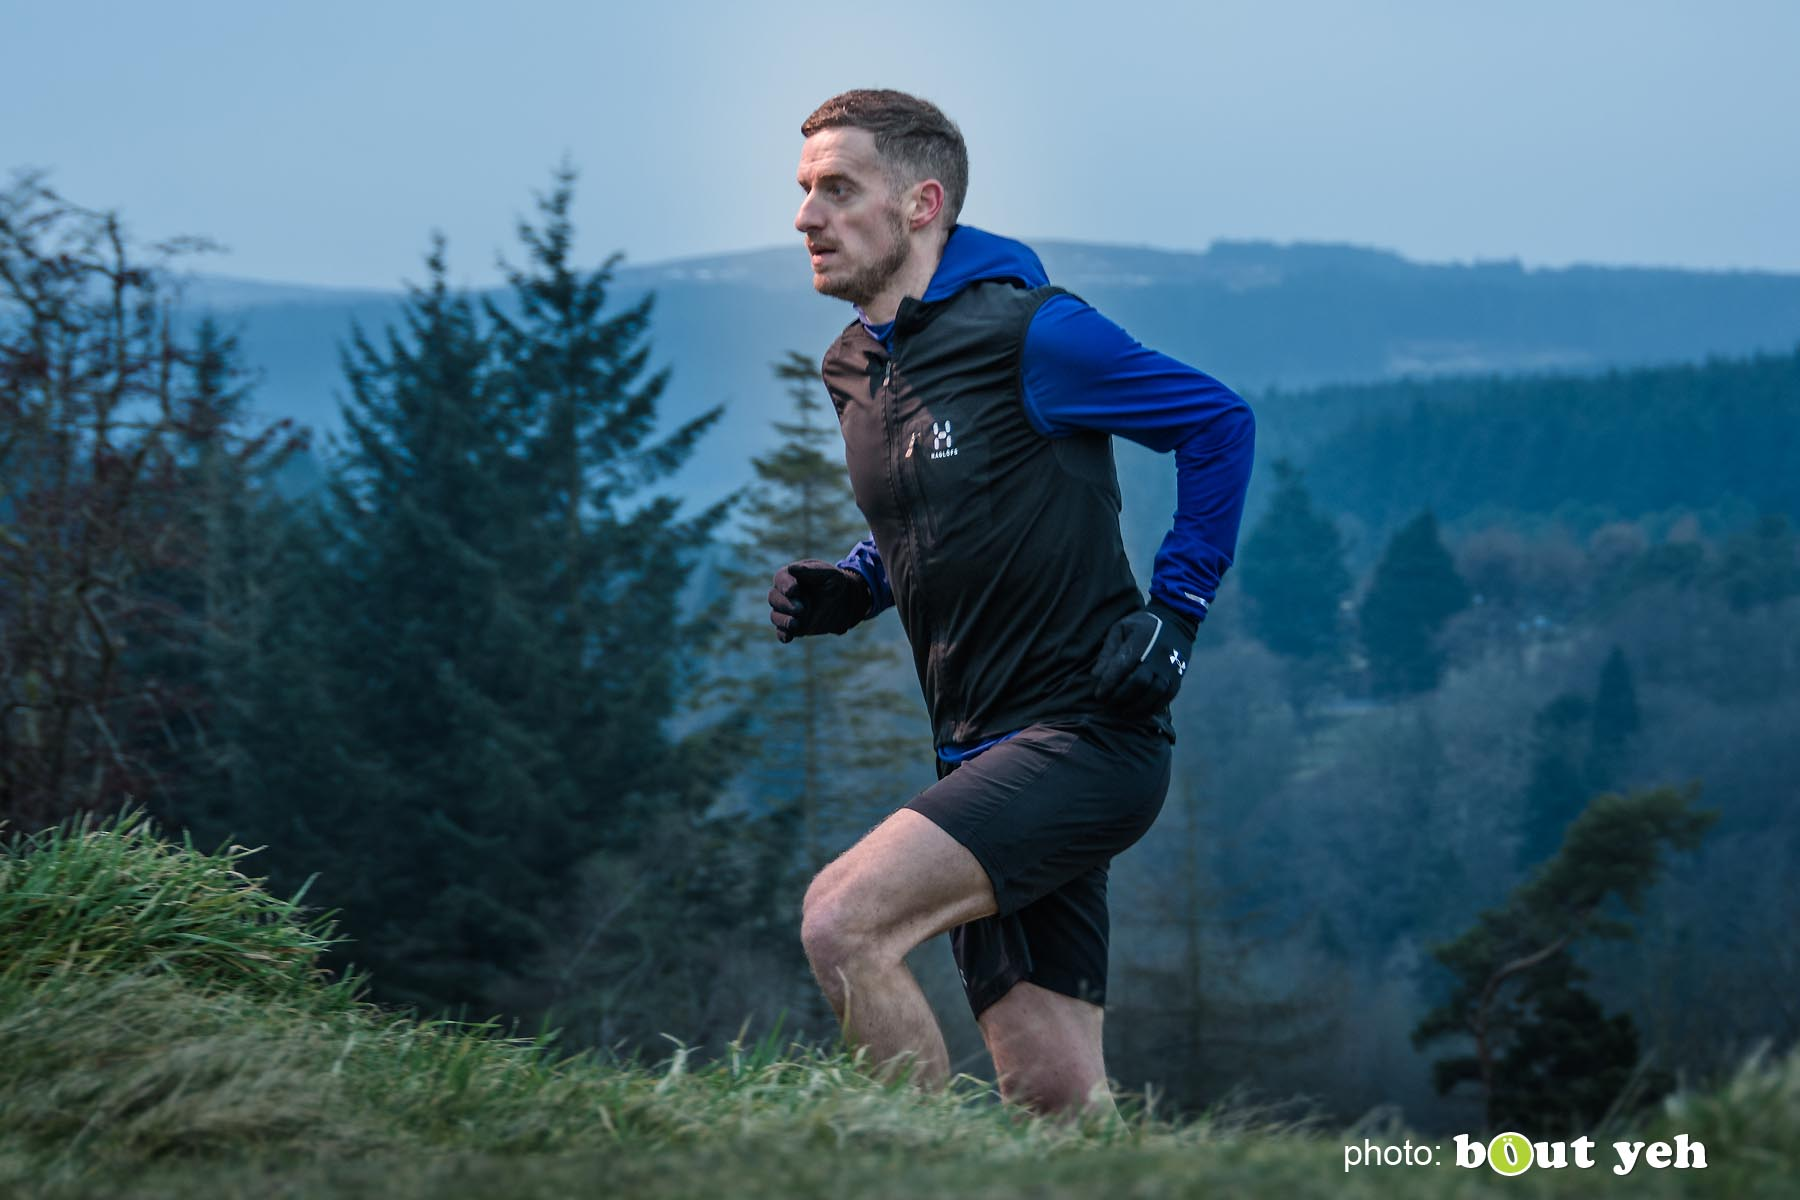 Tim, of Ballymena Runners, at Glenariff Forest, Northern Ireland - photo 0619.